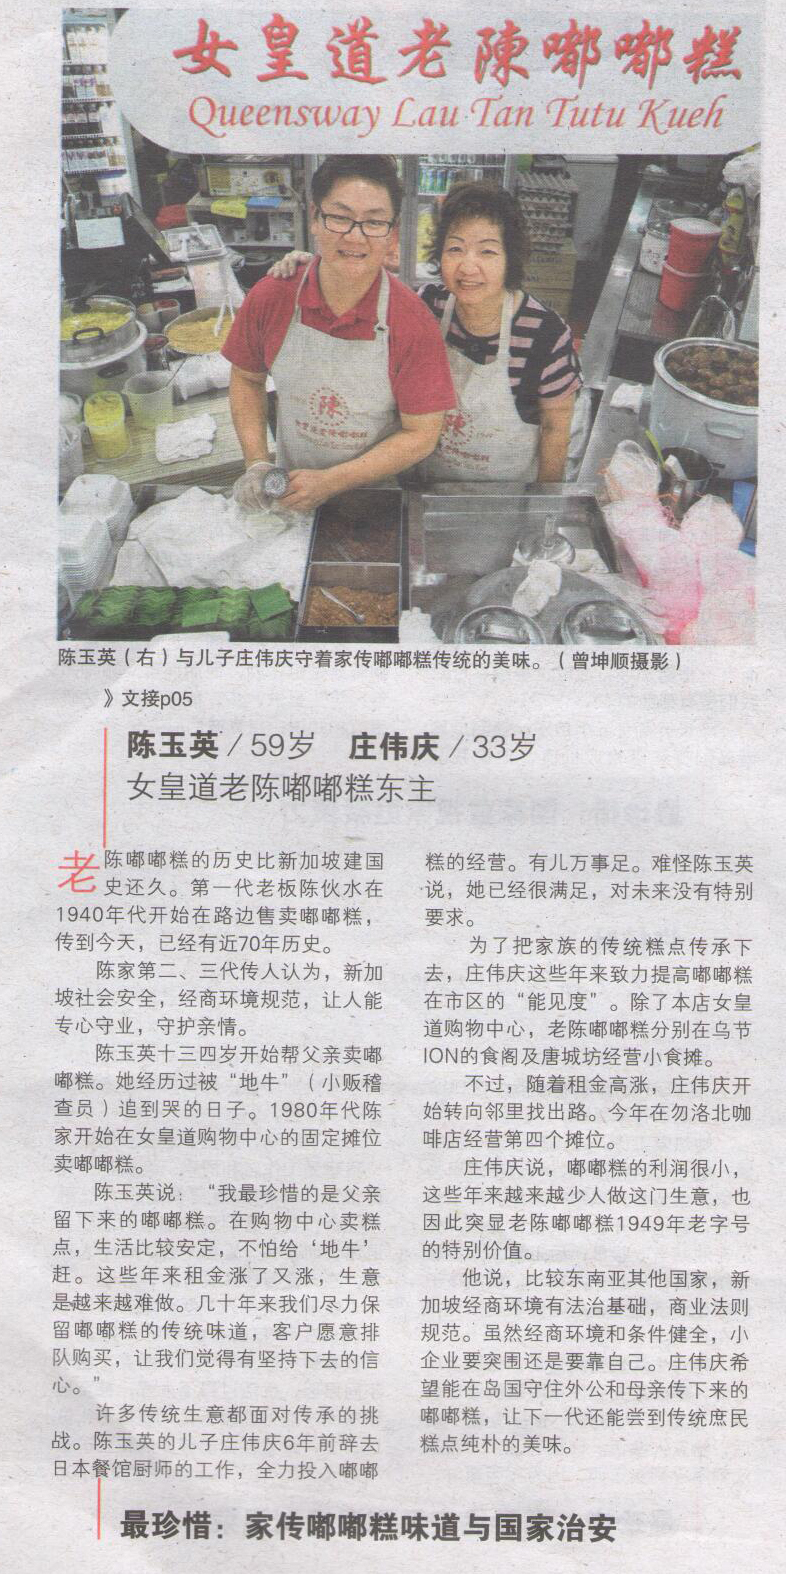 lianhezaobao 7th aug 16 crop.jpg